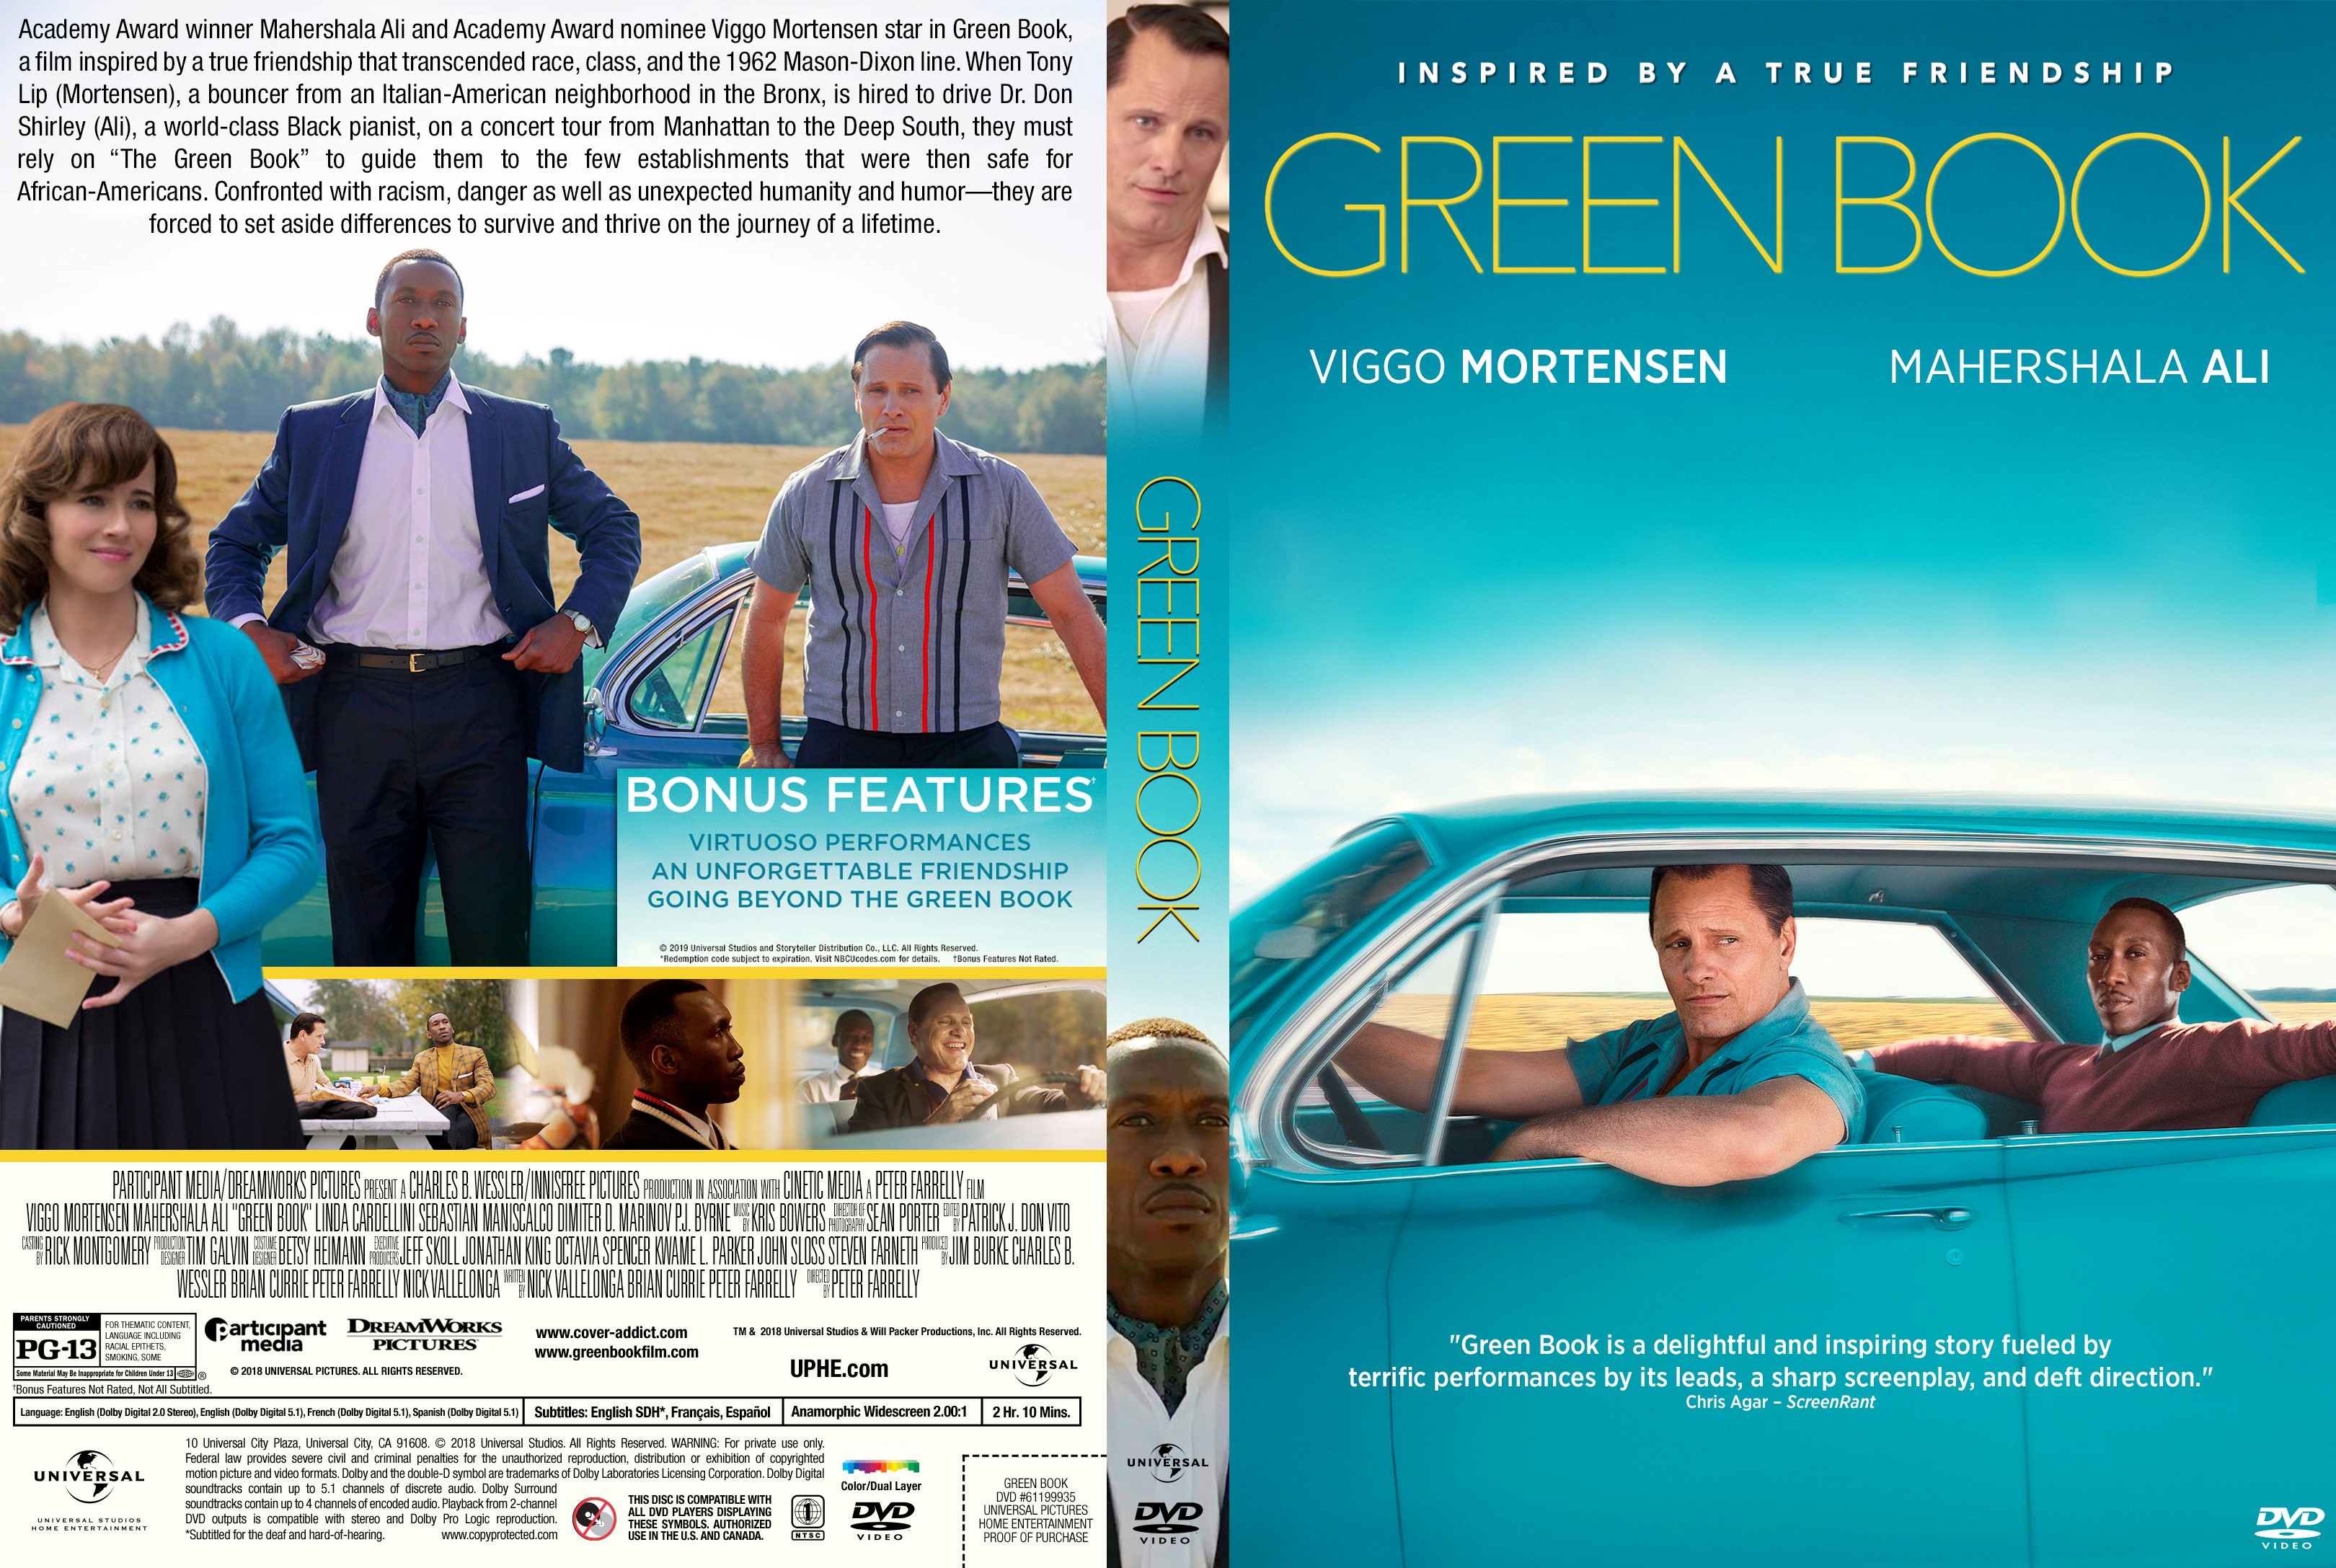 Green Book 2018 Front Dvd Covers Cover Century Over 500 000 Album Art Covers For Free